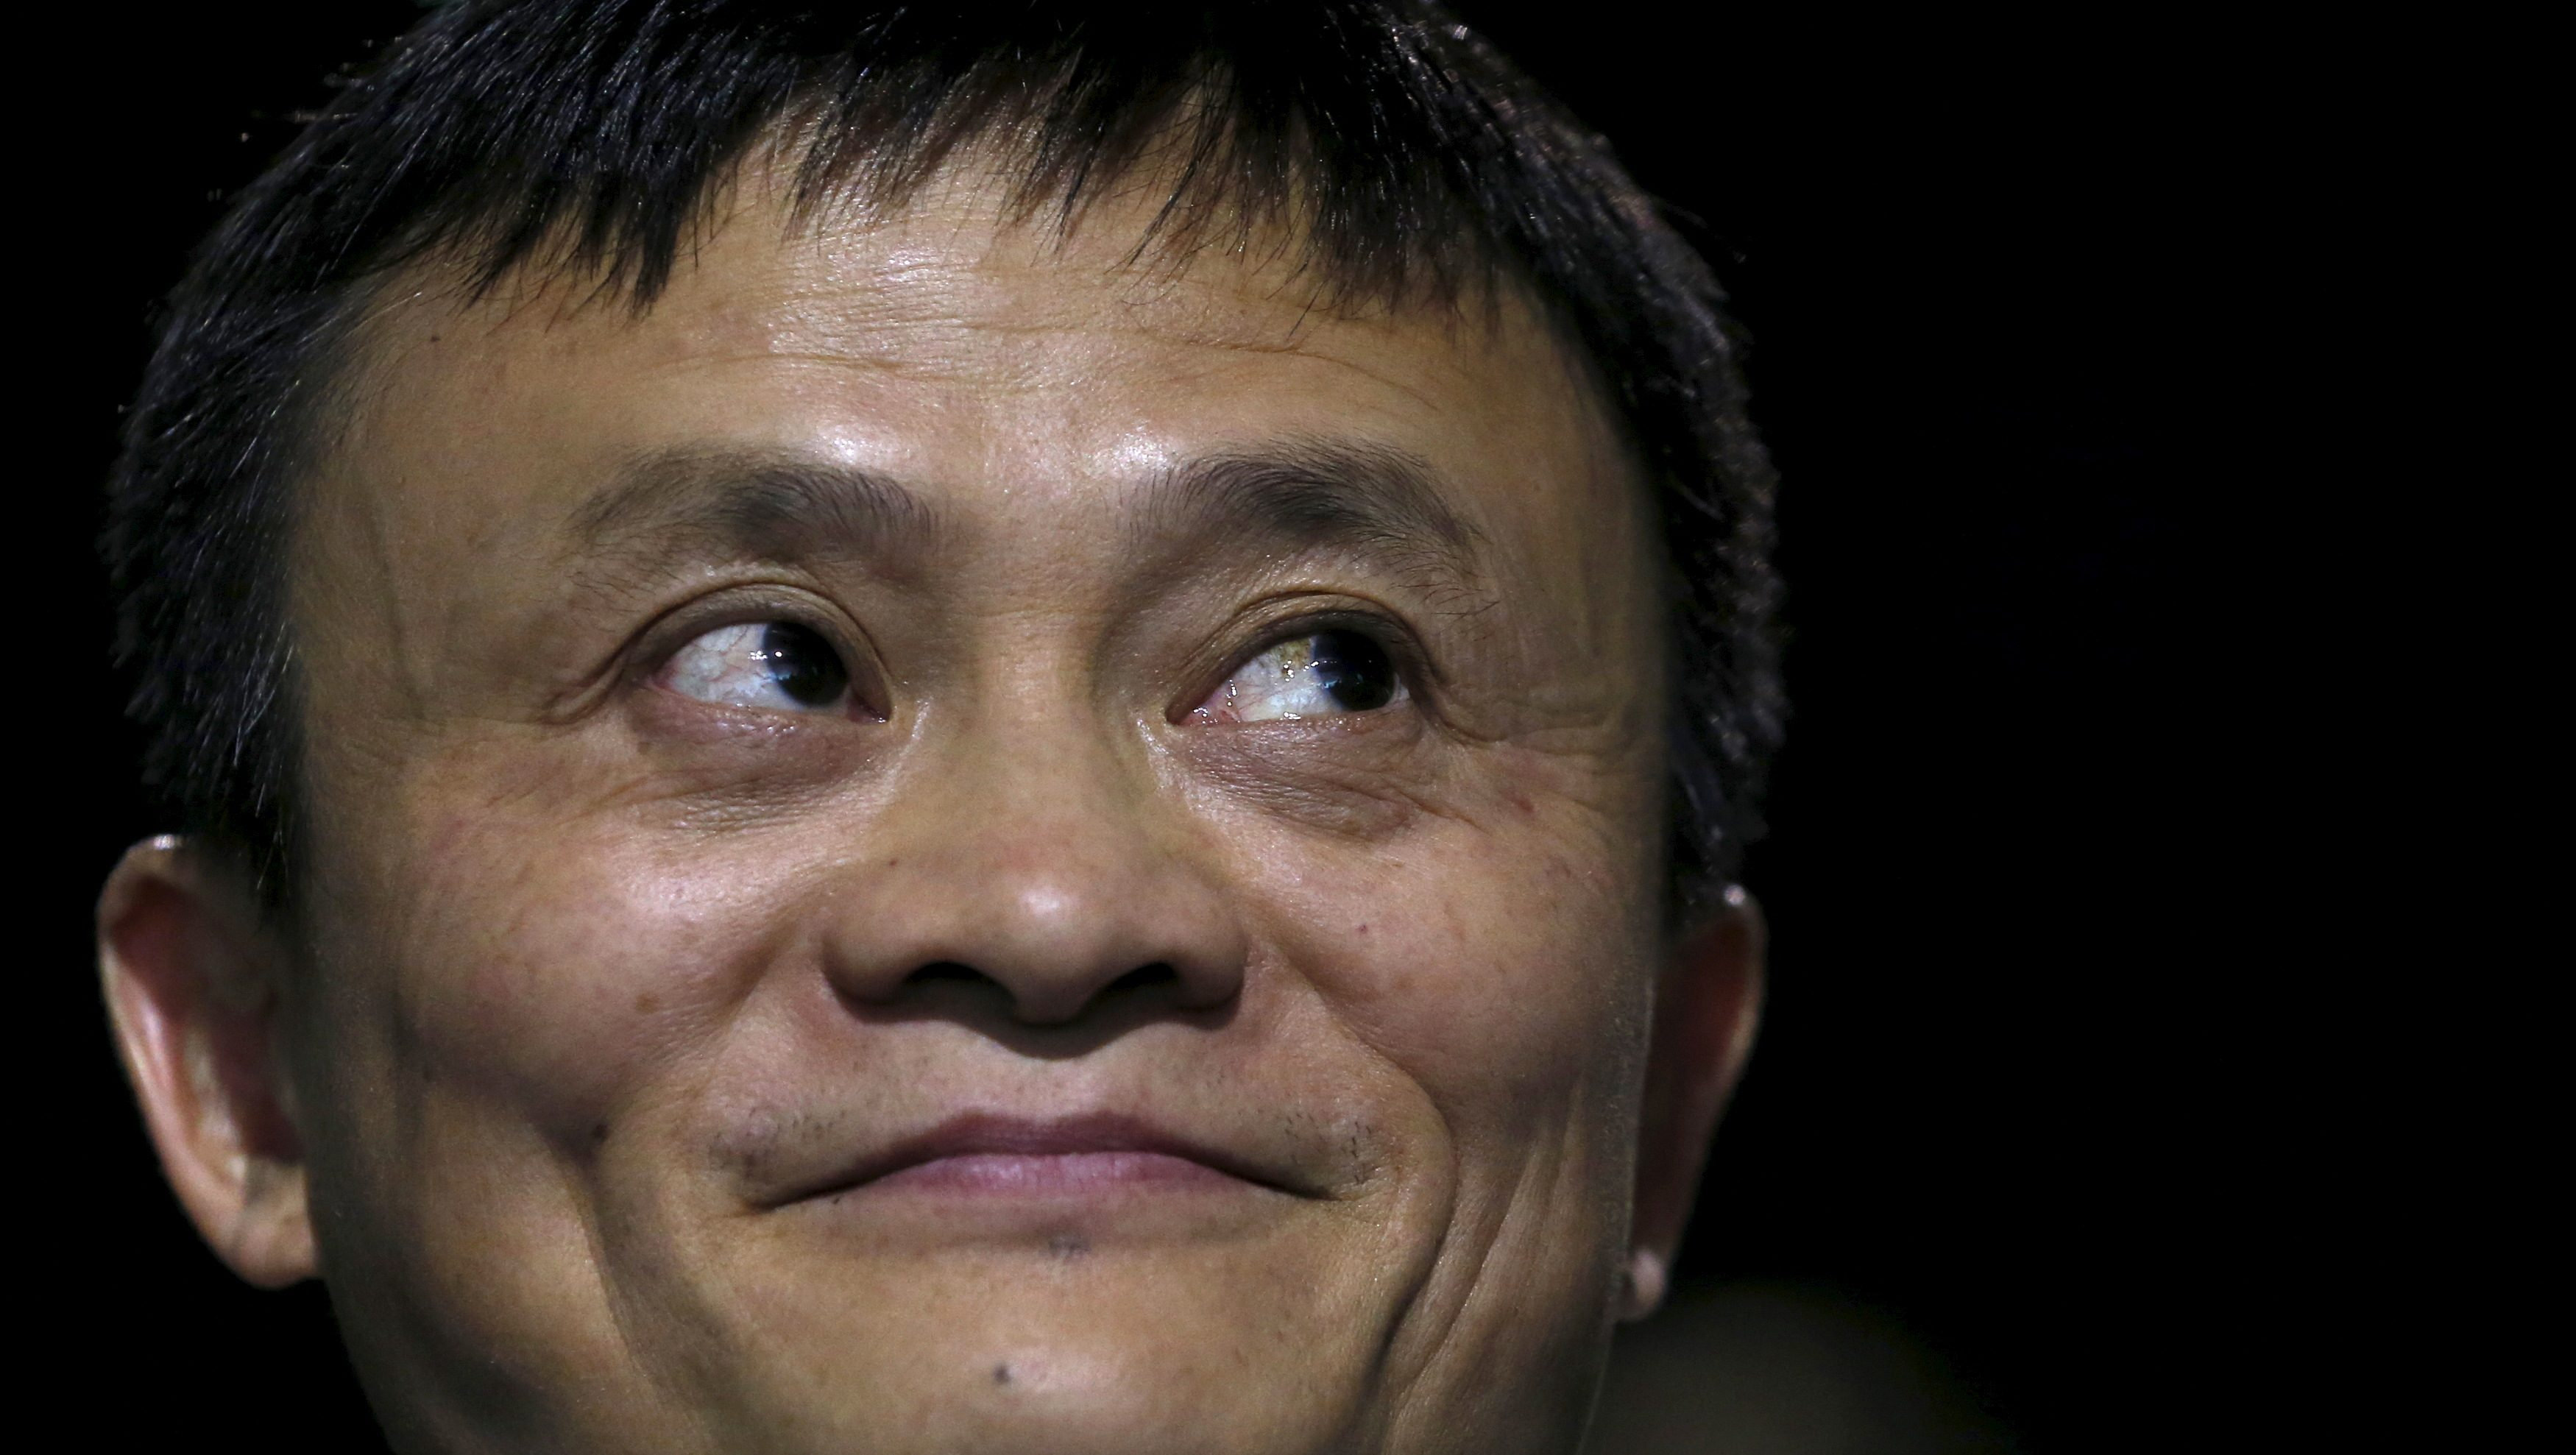 Alibaba Executive Chairman Jack Ma attends the World Climate Change Conference 2015 (COP21) at Le Bourget, near Paris, France